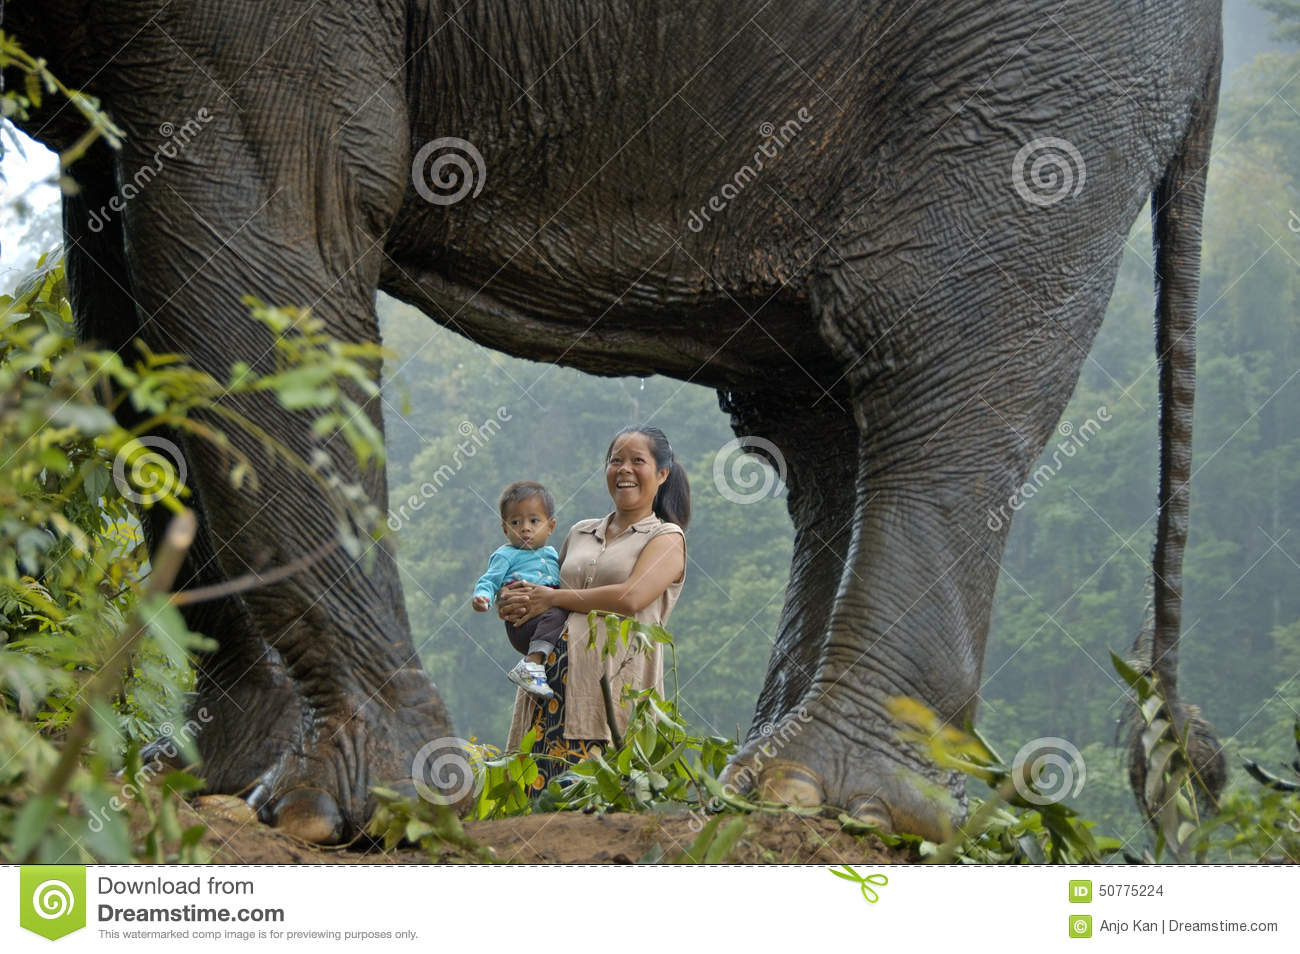 Woman child and elephant in jingle